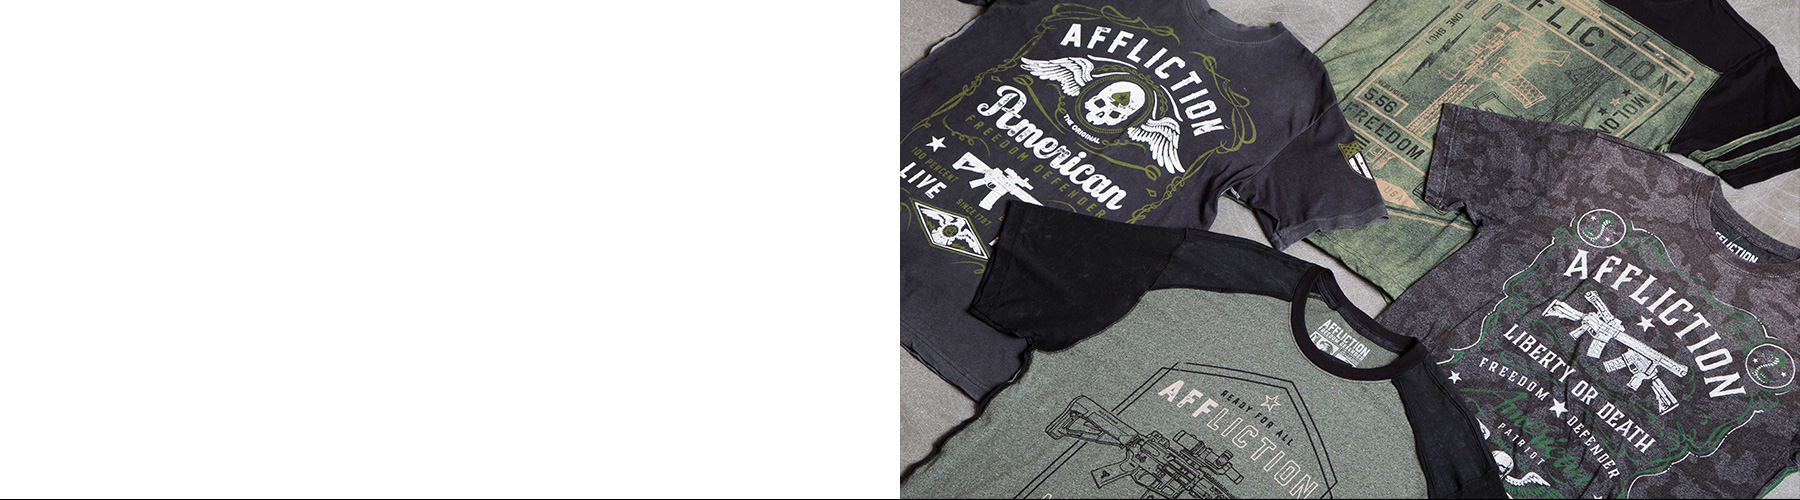 Affliction Freedom Defender Banner